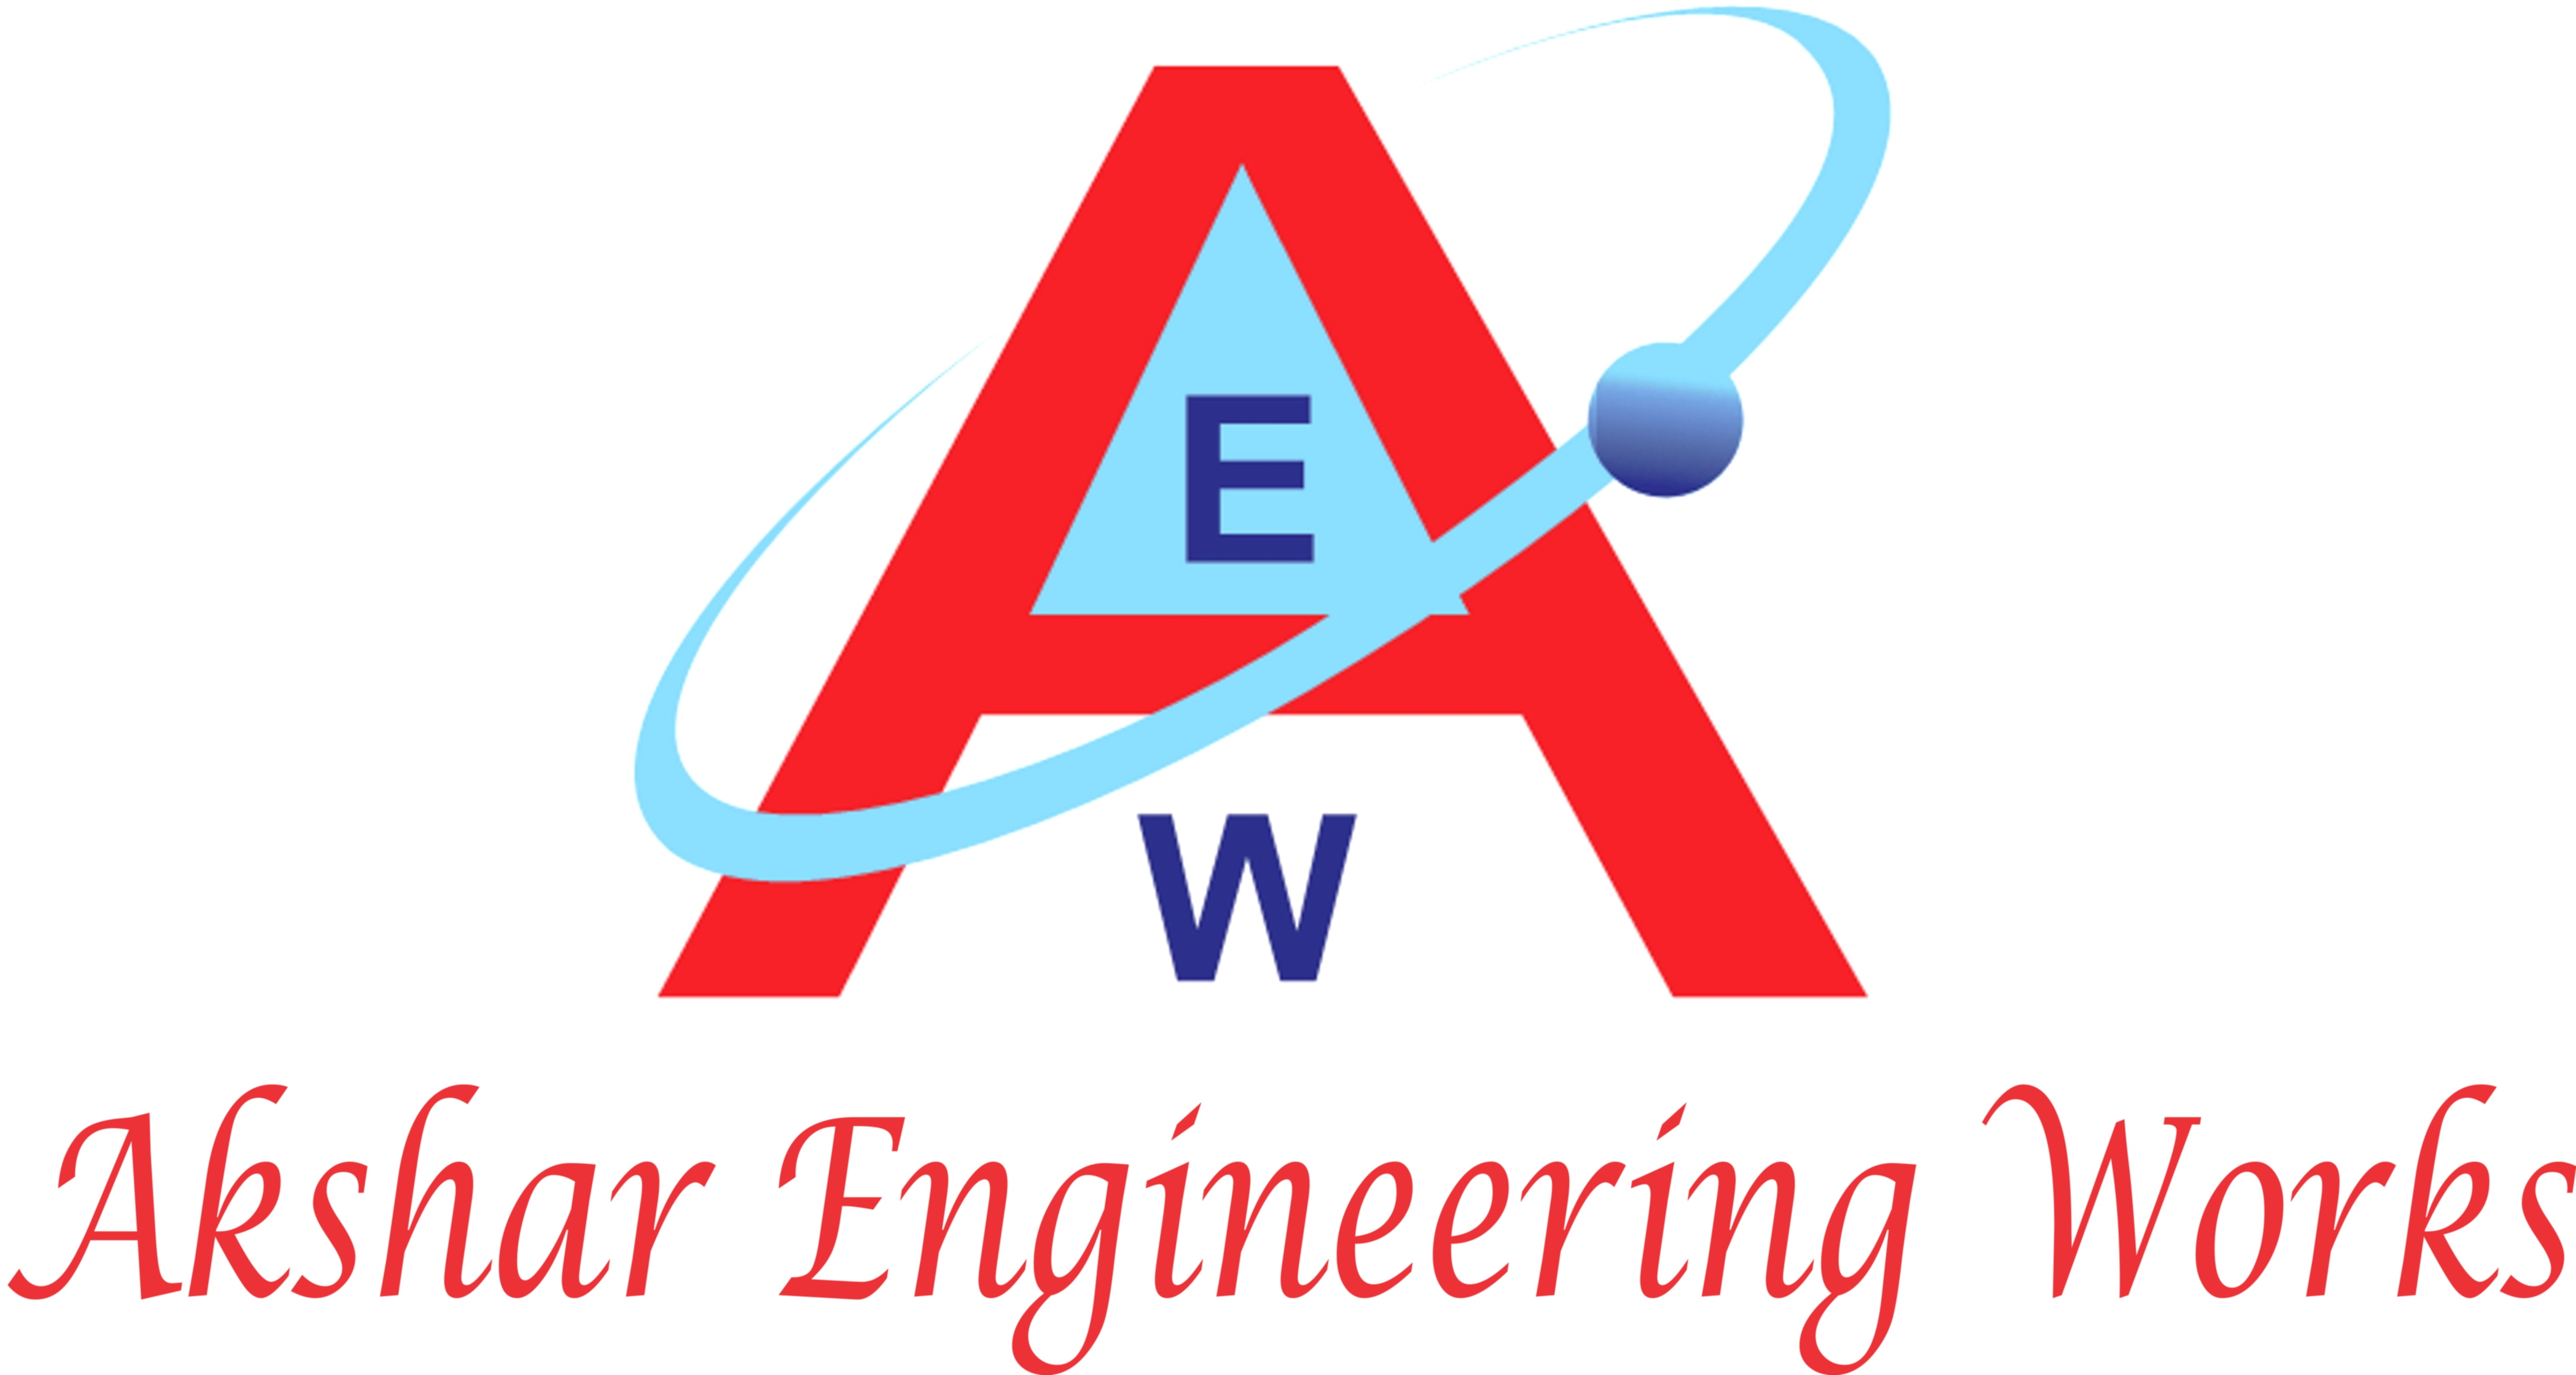 Wholesale Storage Tank Suppliers - Akshar Engineering Works